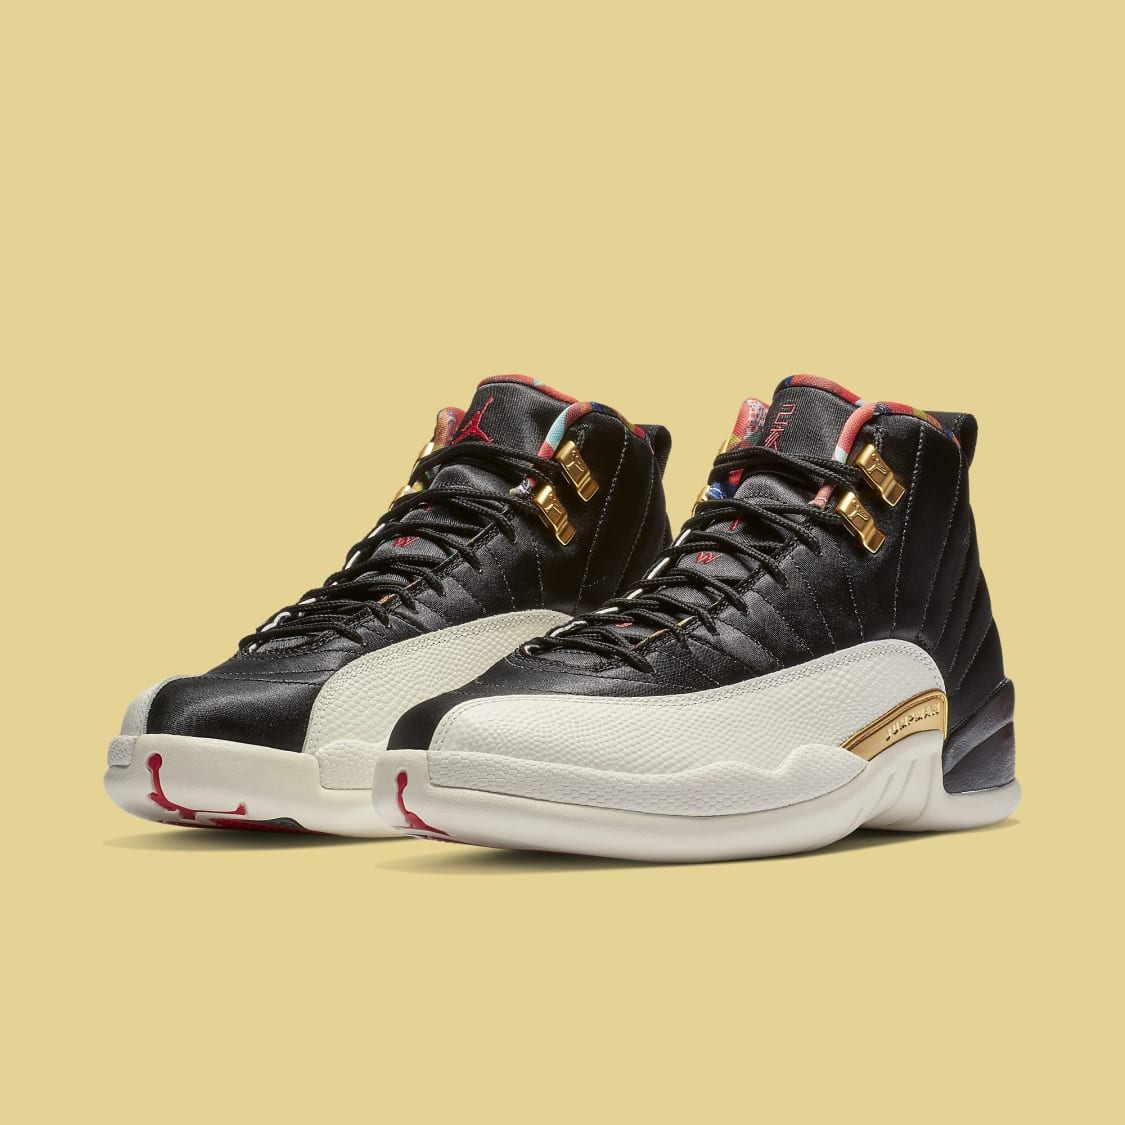 127e2cd60653 The  Chinese New Year  Air Jordan 12 Has Tearaway Uppers